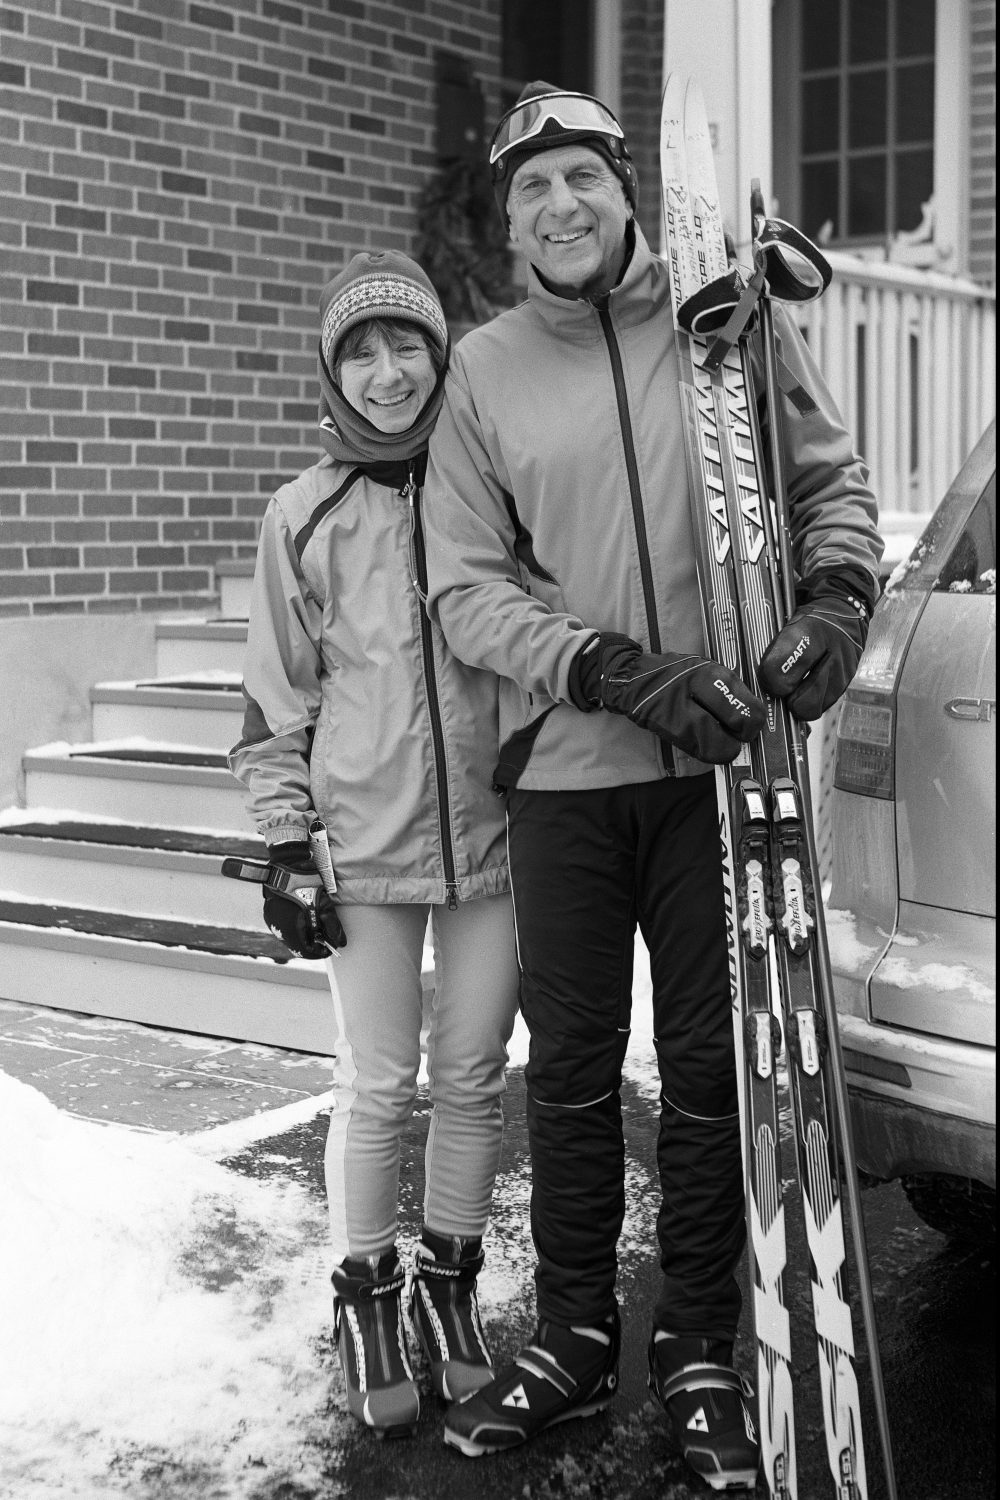 Couple with skis (Pic: Howard Sandler)